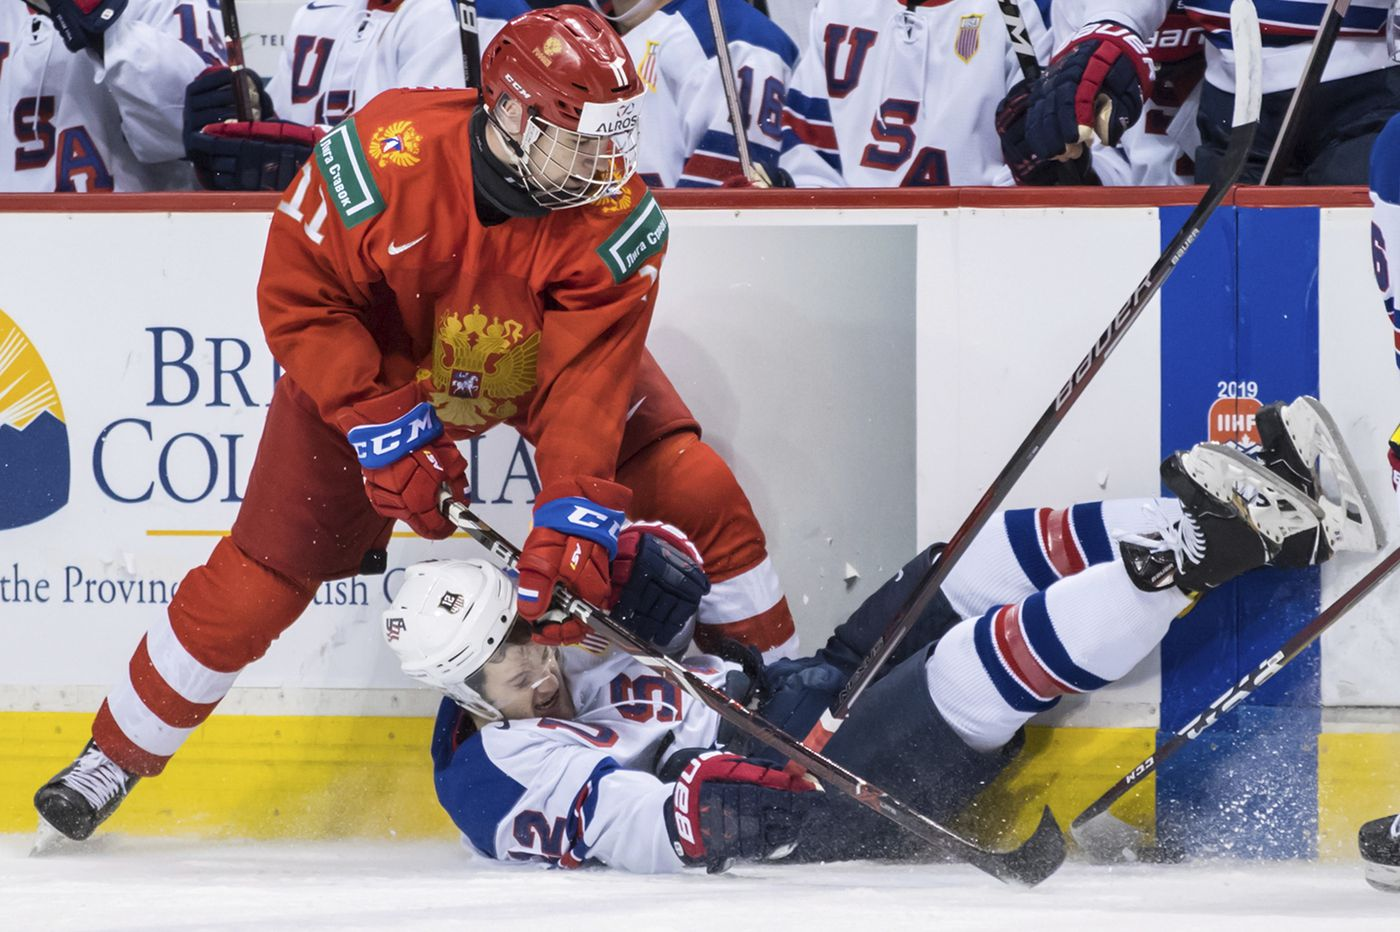 If Flyers keep their first-round draft pick, talented (but flawed) Russian winger Vasili Podkolzin could be available